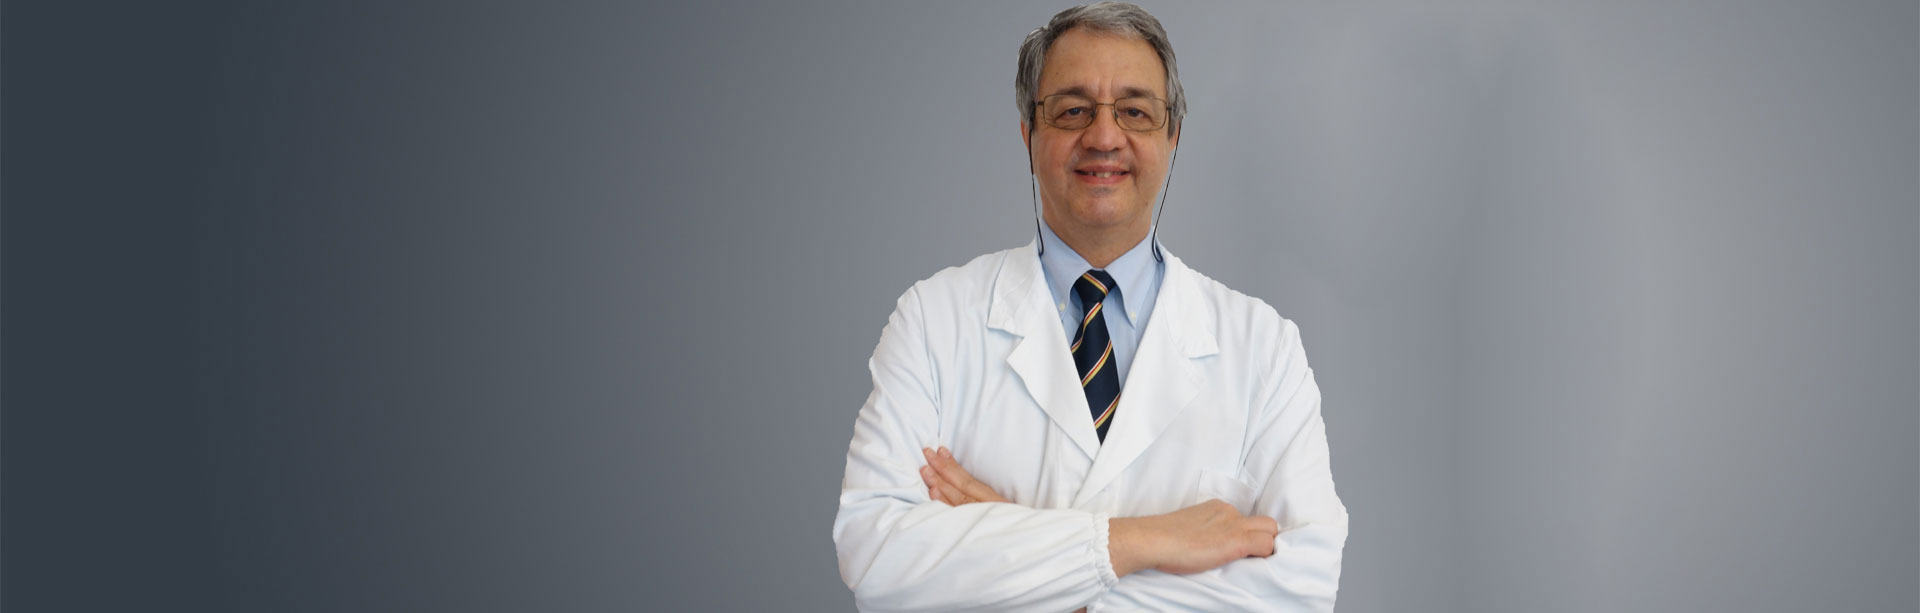 Dr. Massimo Montemagno